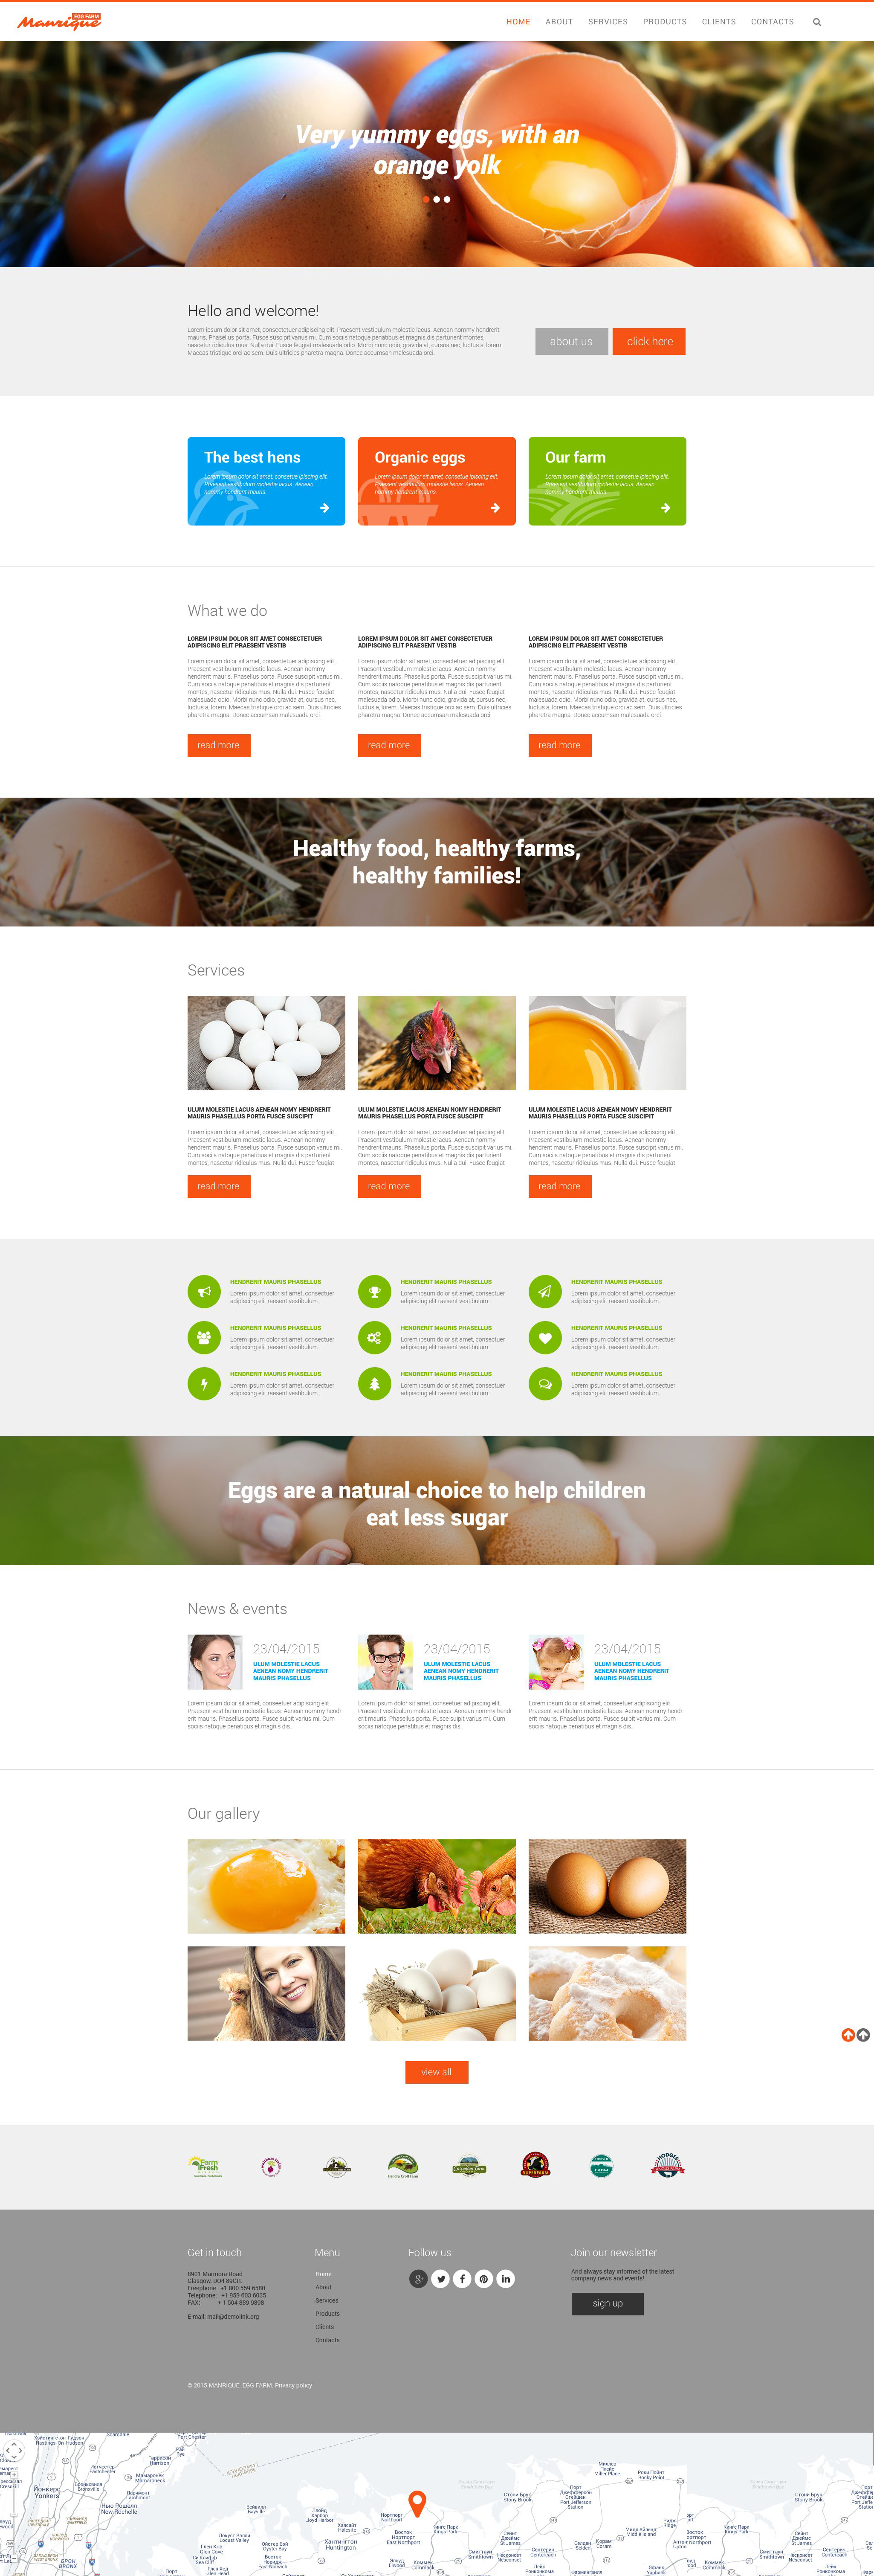 Egg Farm Website Template - screenshot